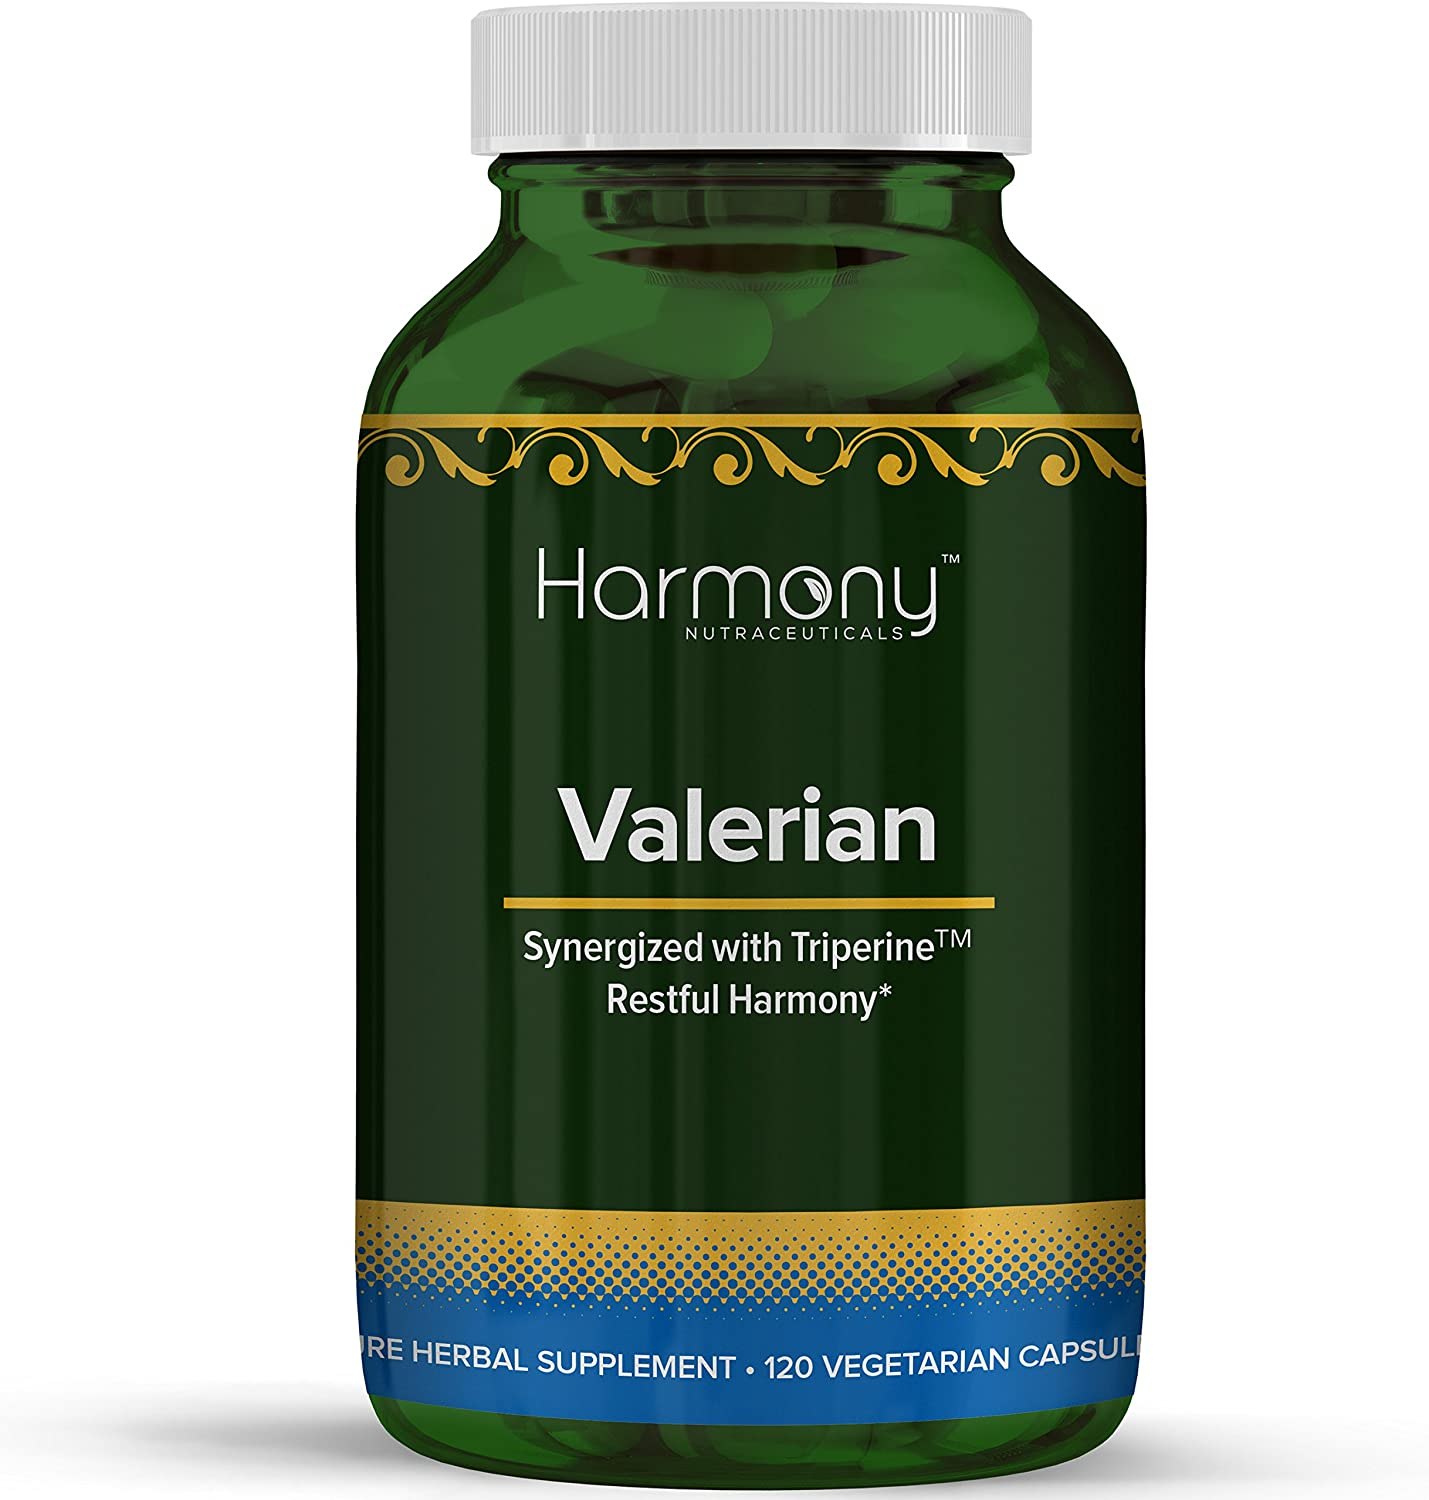 Valerian Ayurvedic Promotes Rest Sleep Relaxes Muscles Veget 120 Max 56% OFF Fresno Mall